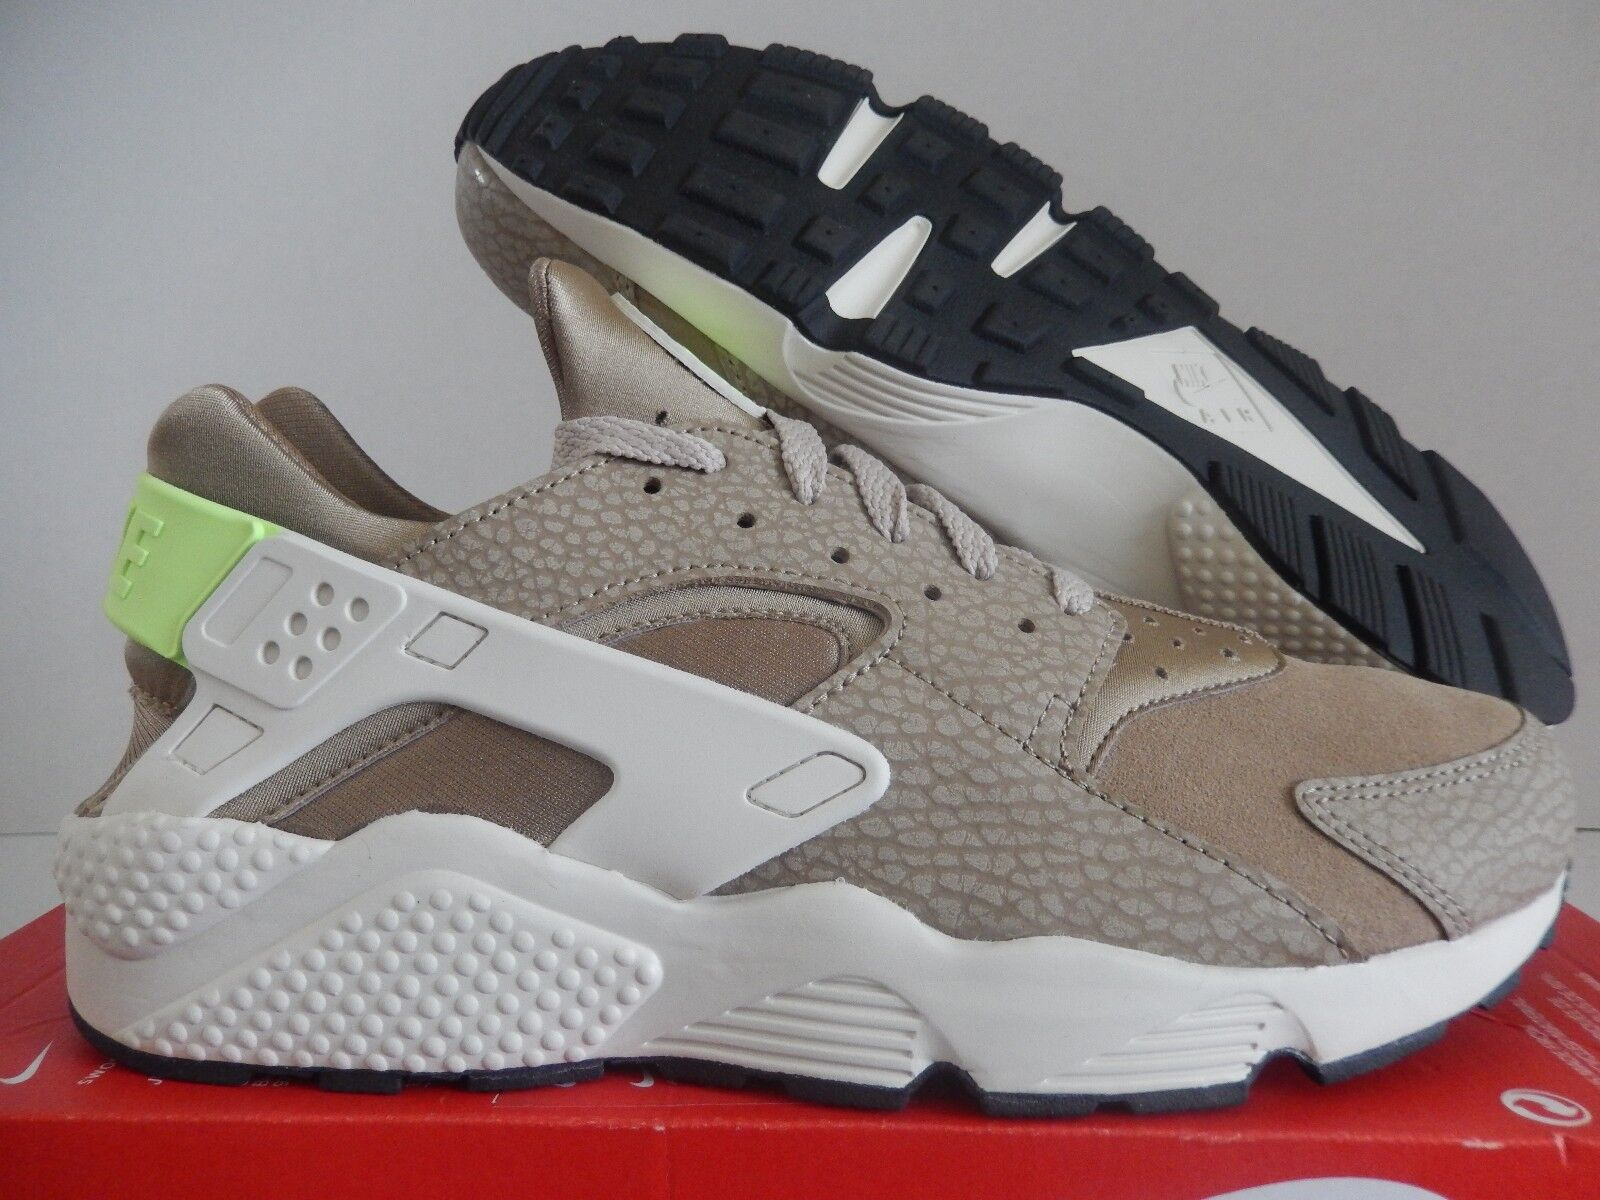 on sale 88af8 21f95 ... UPC 091209073223 product image for Nike Air Huarache Run Prm Premium  Desert Camo-ghost Green